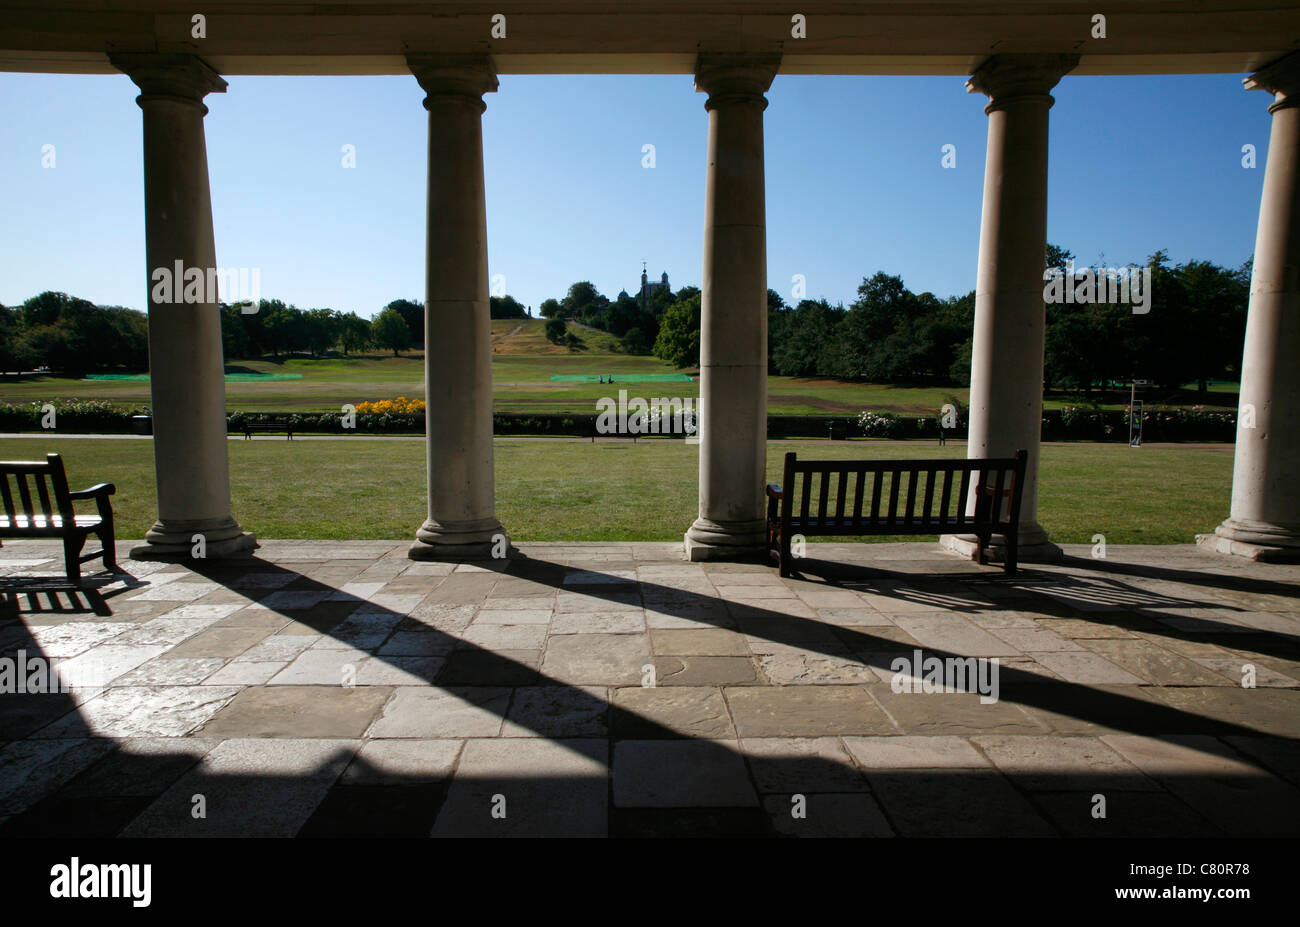 View through the colonnade of the National Maritime Museum to the Royal Observatory in Greenwich Park, Greenwich, - Stock Image